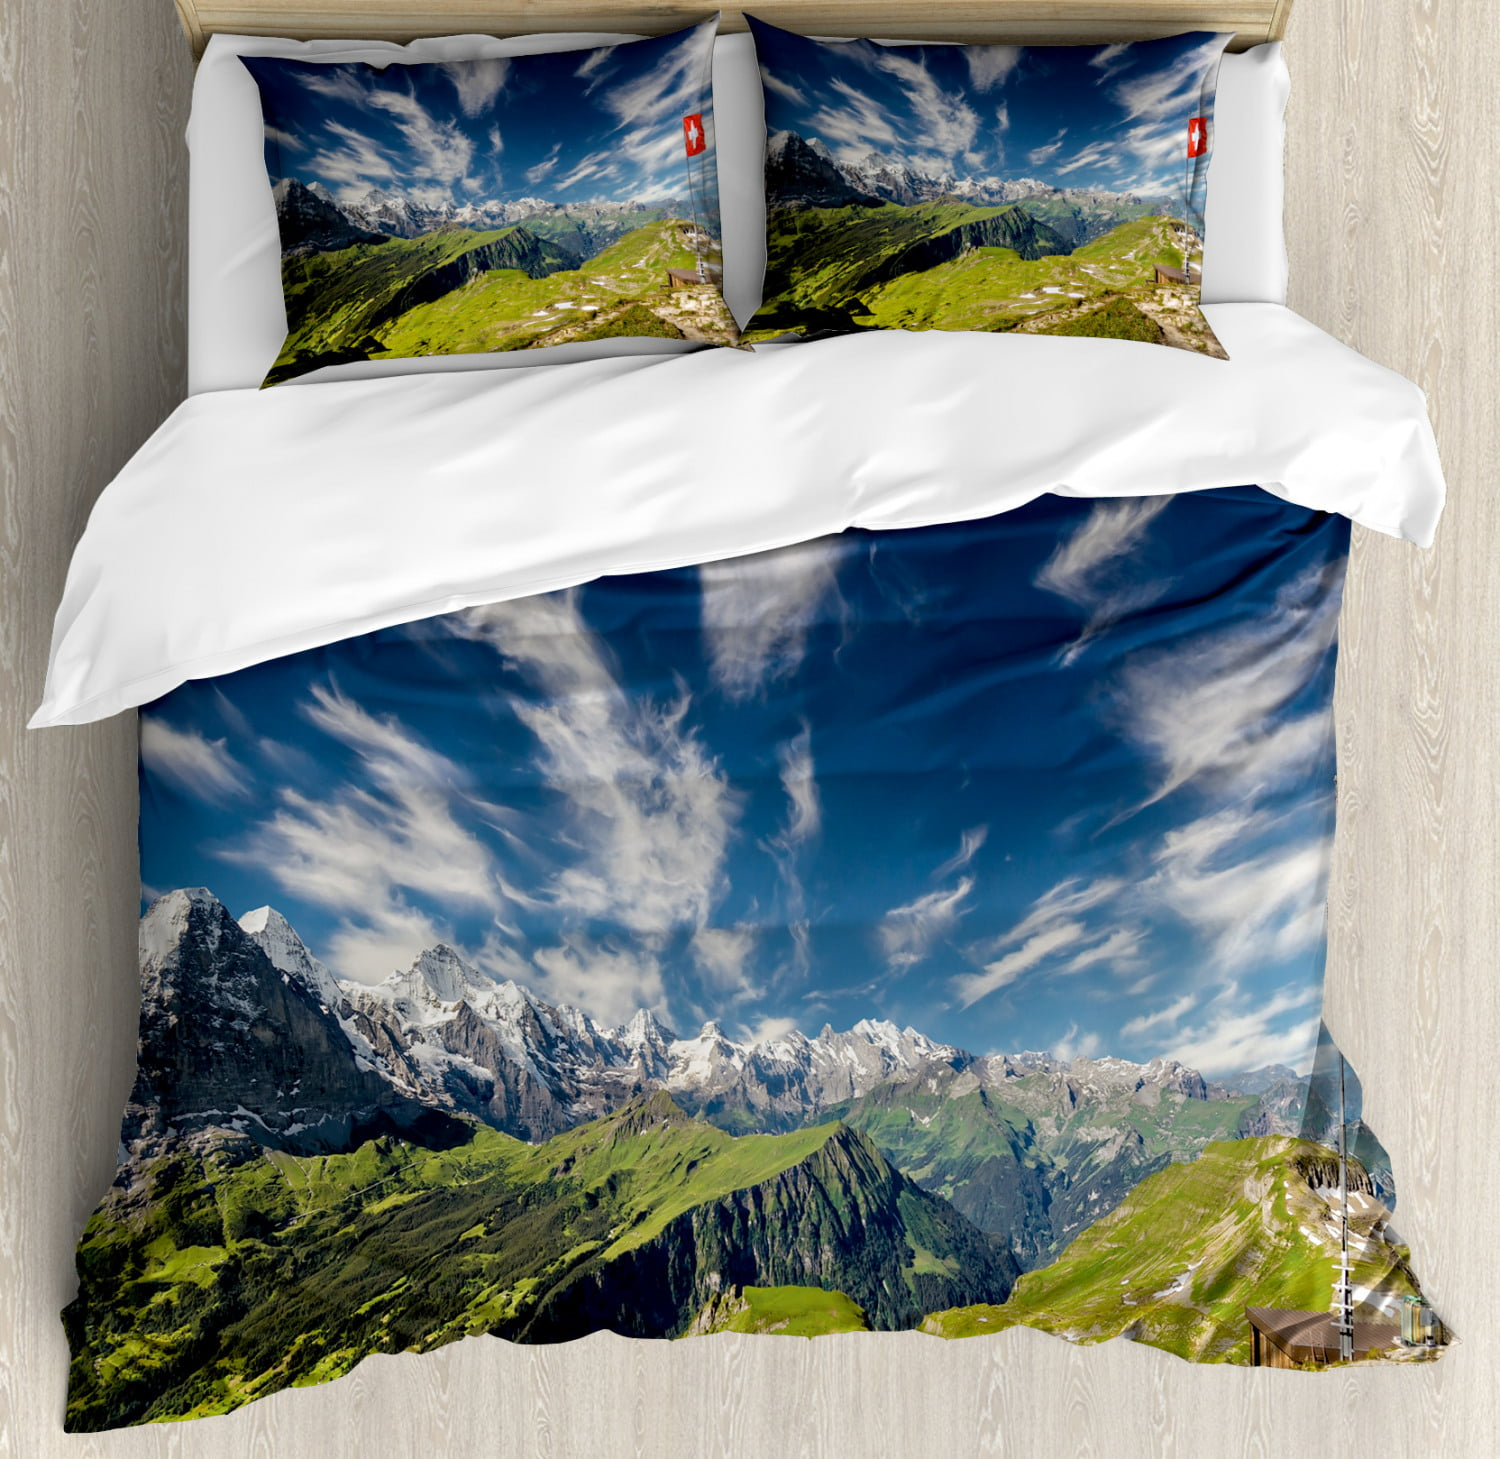 Switzerland Duvet Cover Set Panoramic View Of The Swiss Alps Idyllic Nature Photography Mountain Region Decorative Bedding Set With Pillow Shams Multicolor By Ambesonne Walmart Com Walmart Com